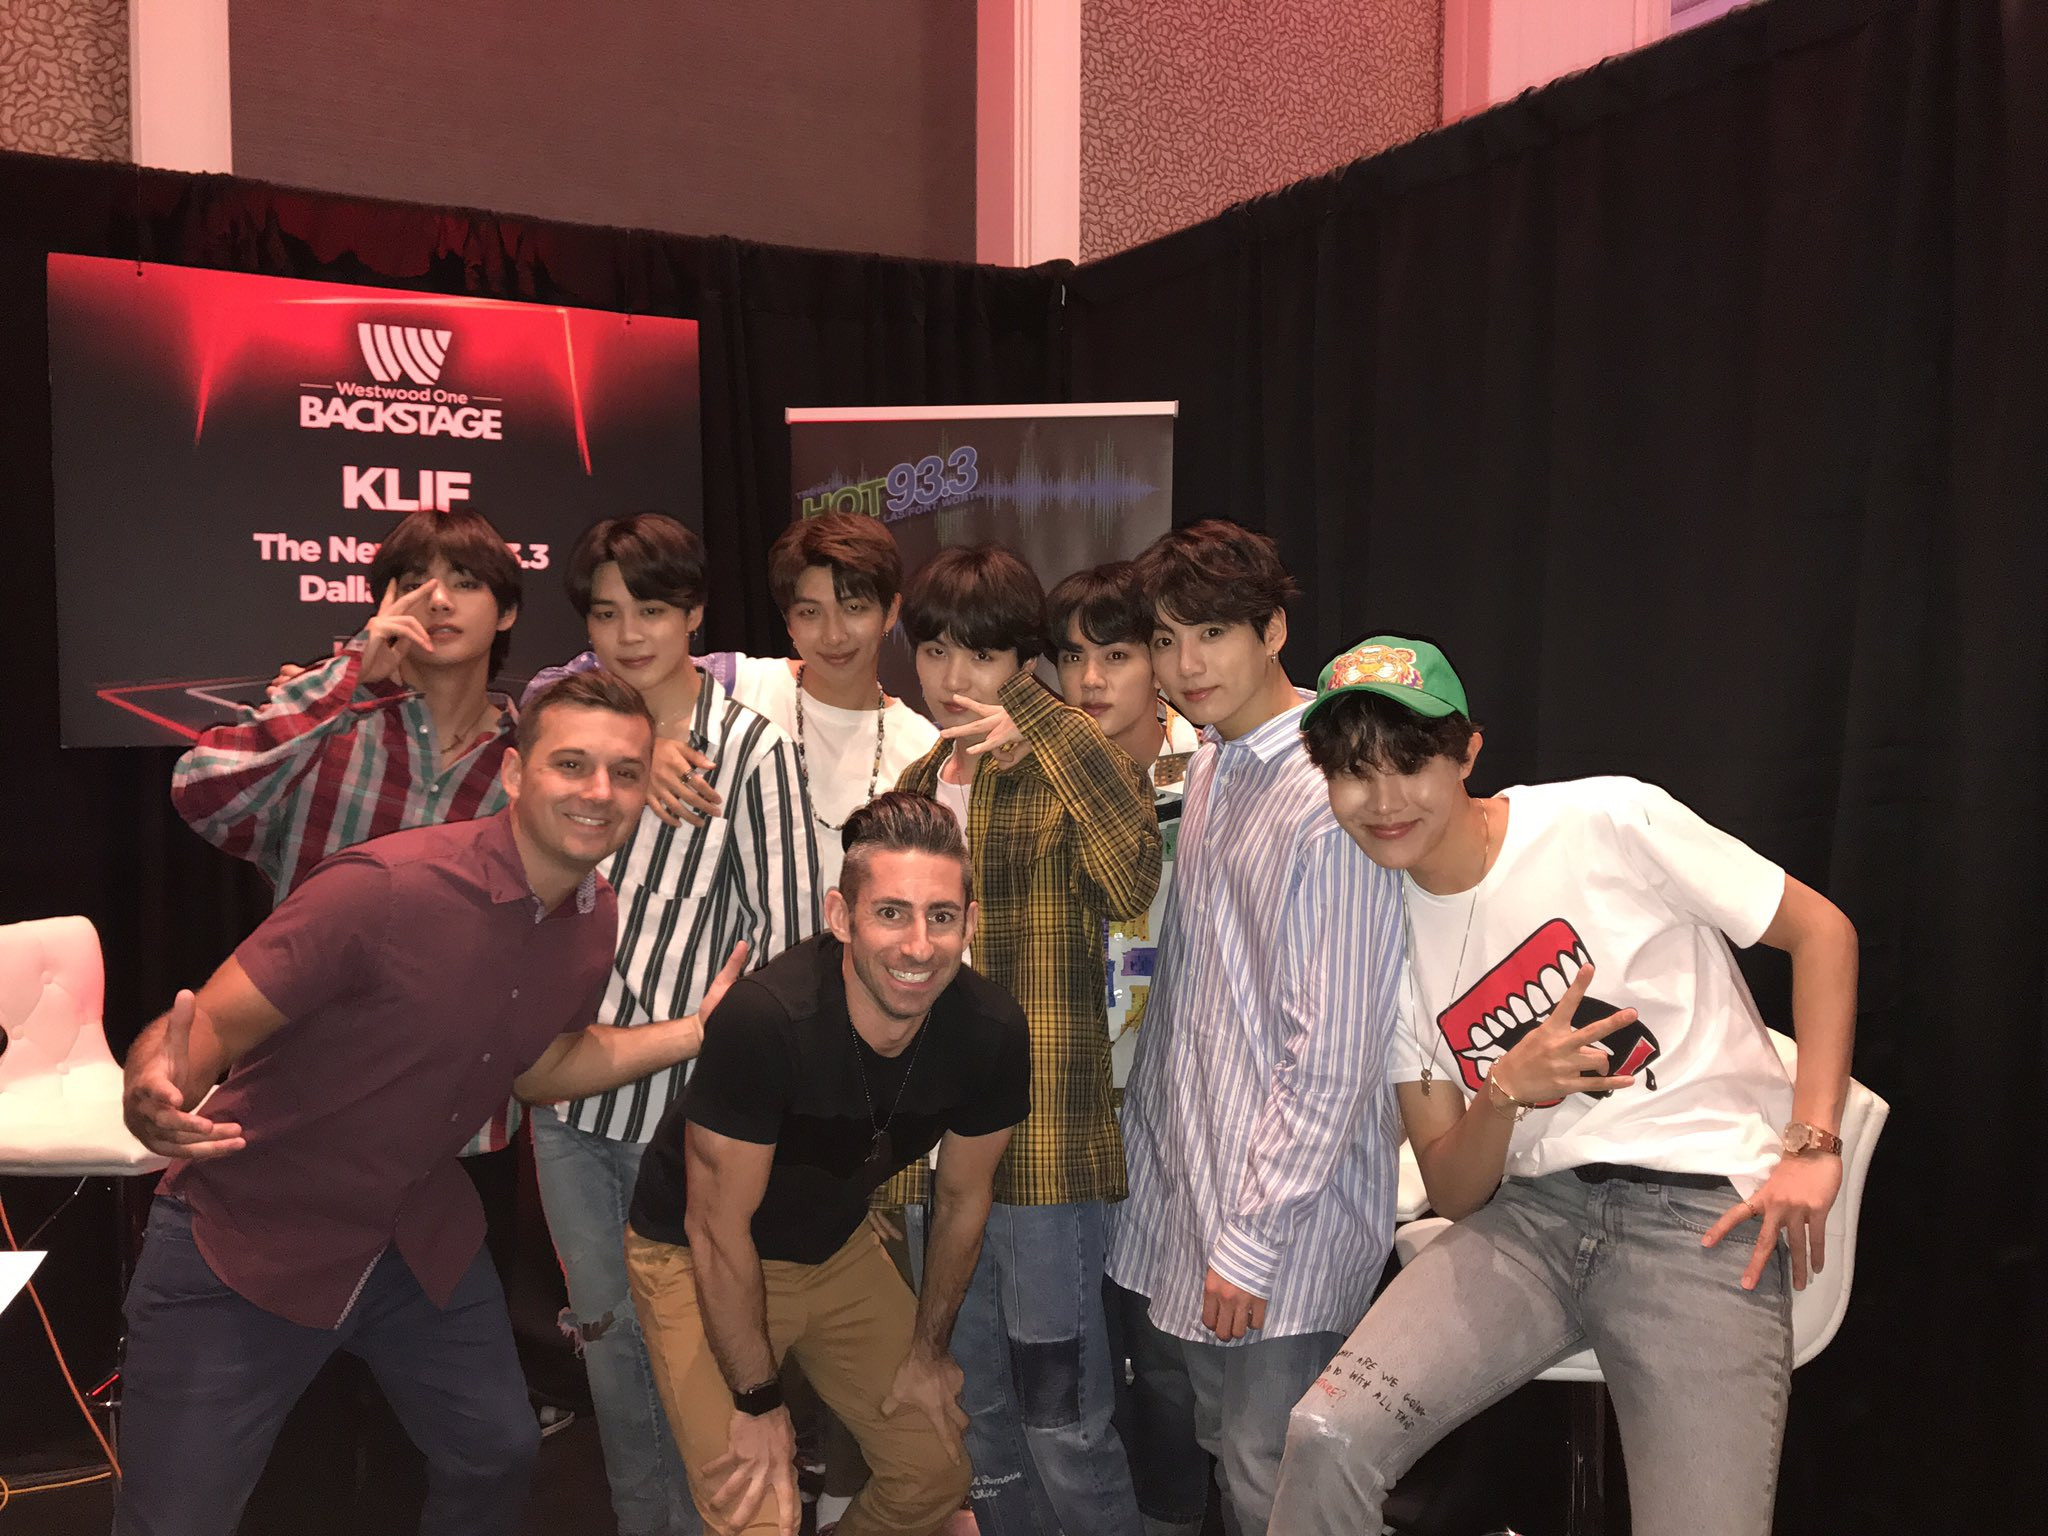 f8ma ddl5wn vmaqqkcc - [Picture/Media] BTS at 2018 BBMAs (Westwoodone Backstage) [180520]